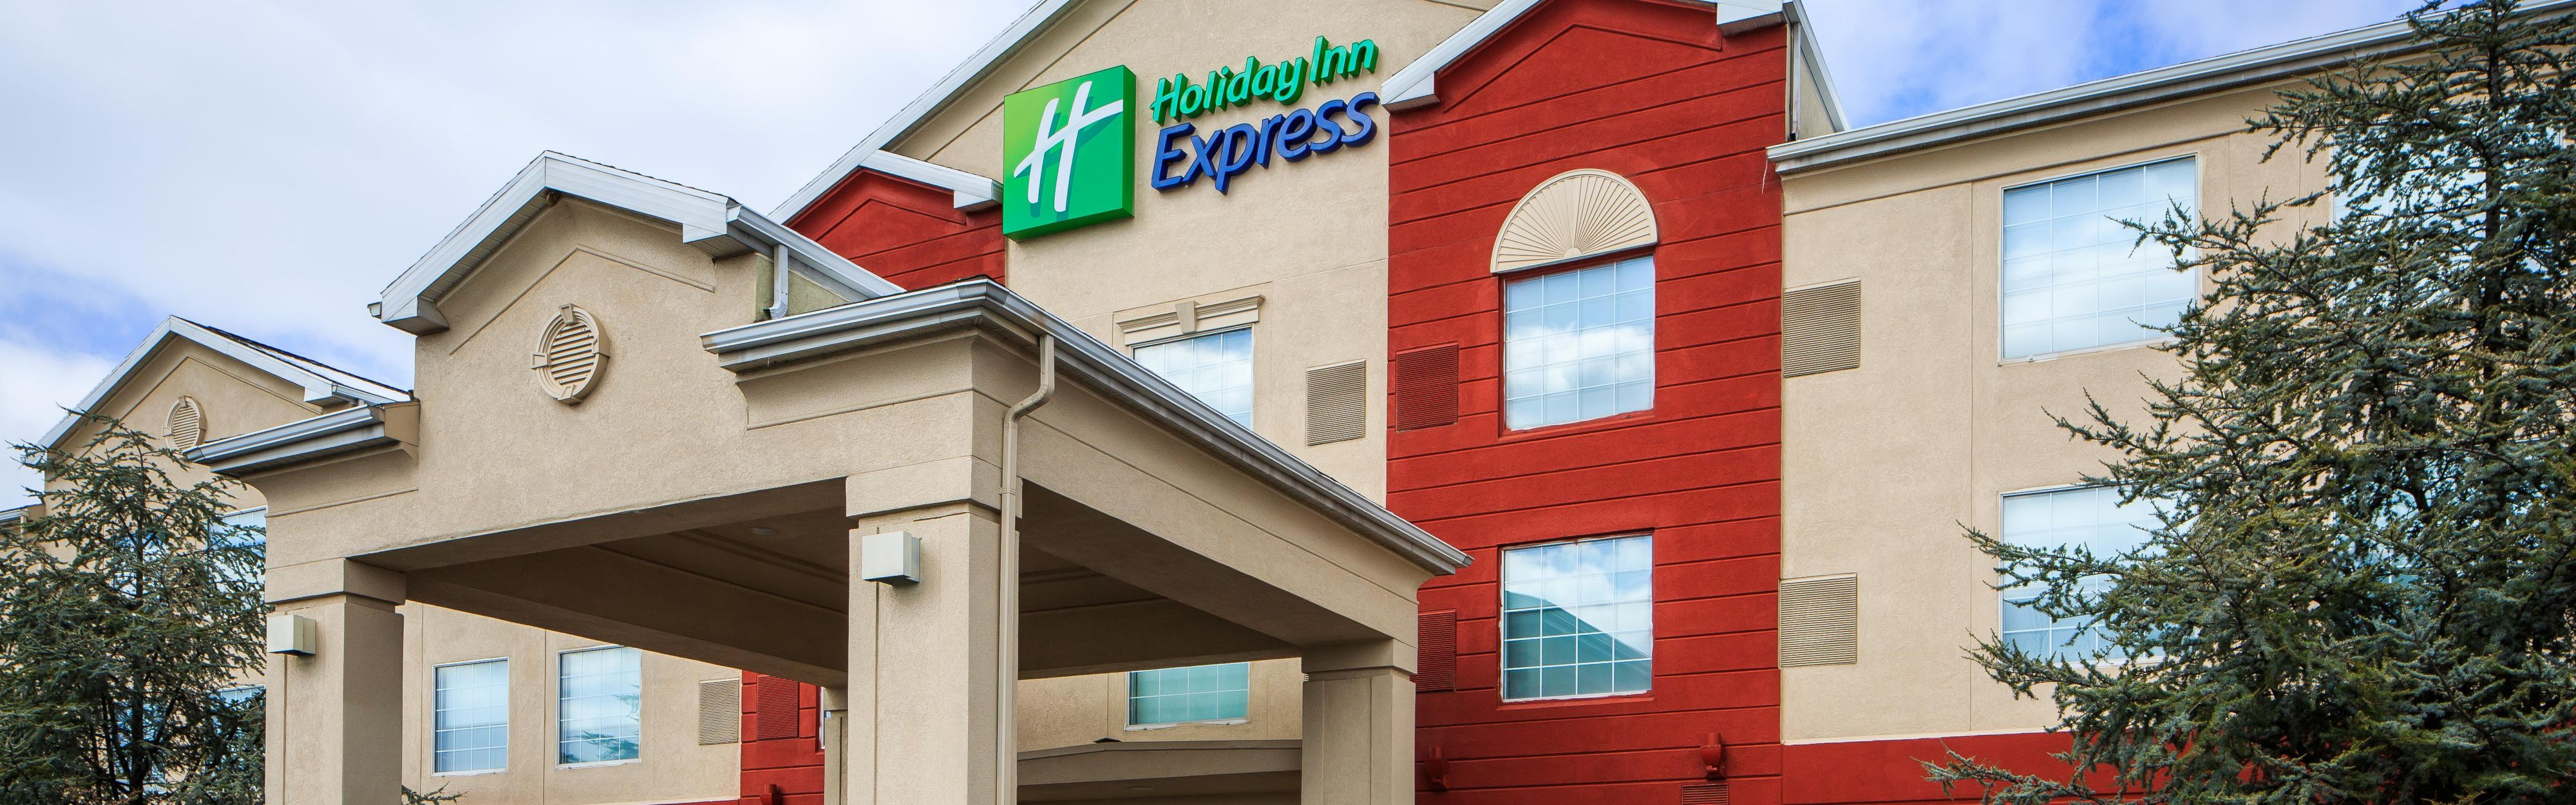 Holiday Inn Express & Suites Reading Airport image 0